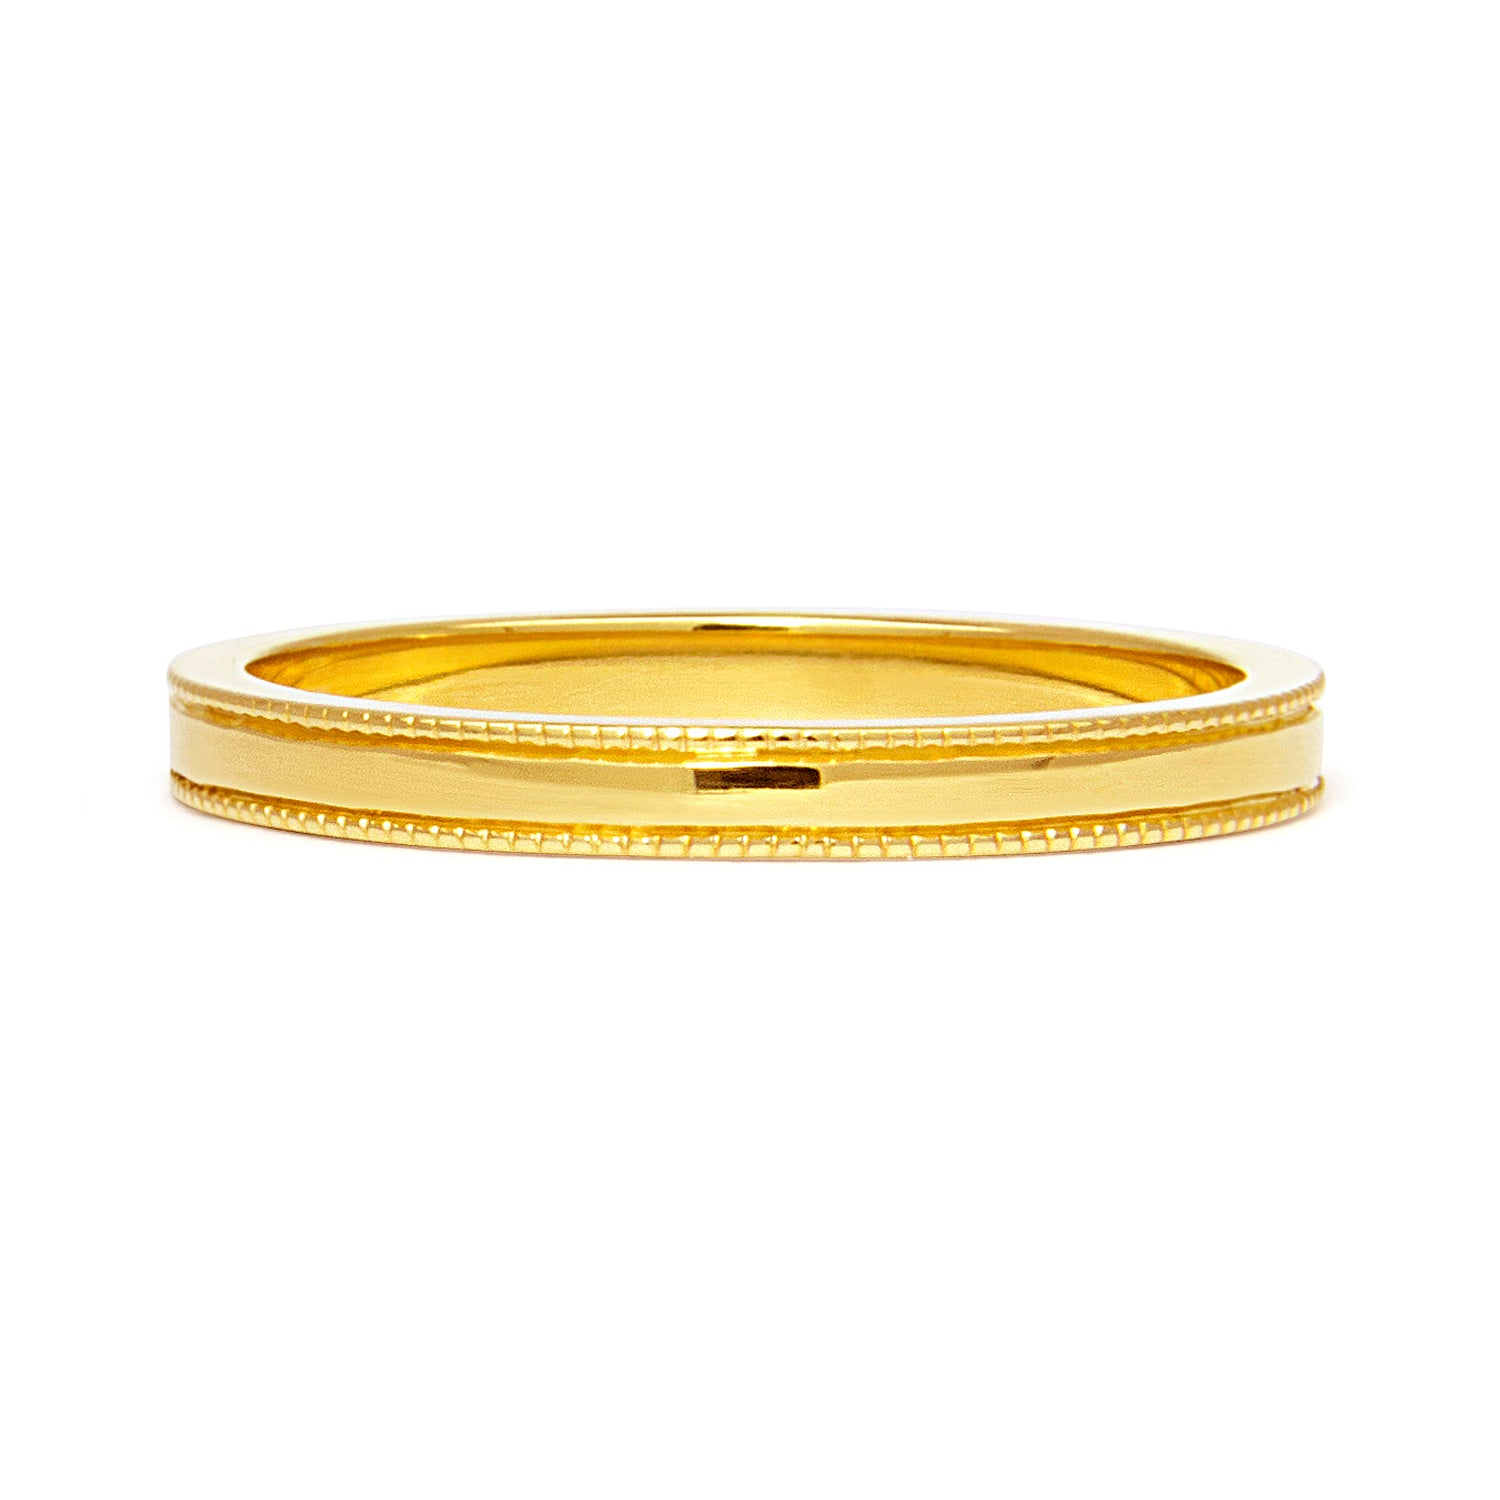 Vintage Milgrain Ethical Gold Wedding Ring, 2mm